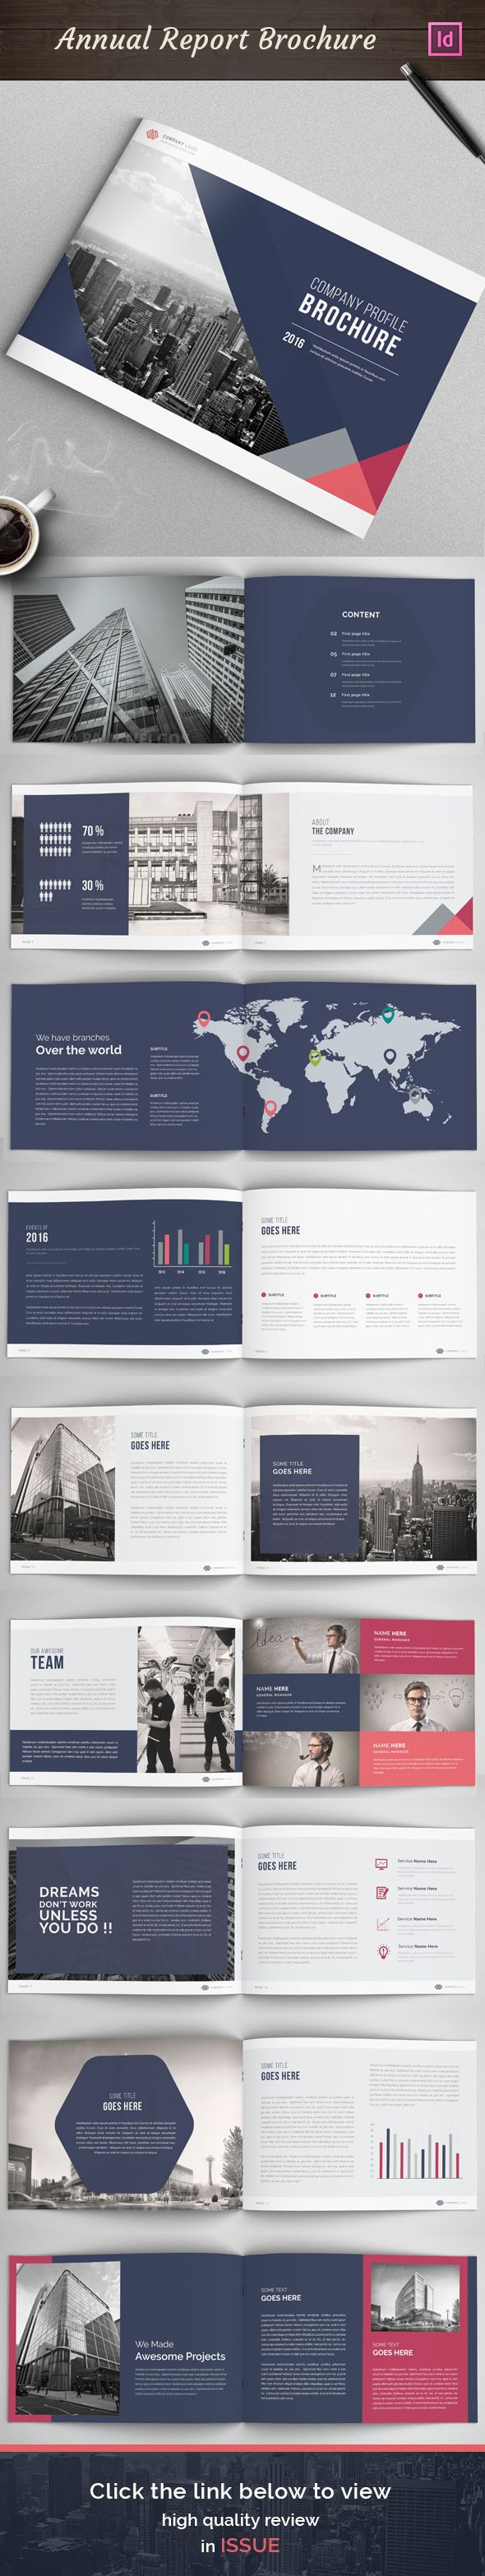 Best Brochure Design Images On Pinterest Brochures Editorial - Awesome report template ideas